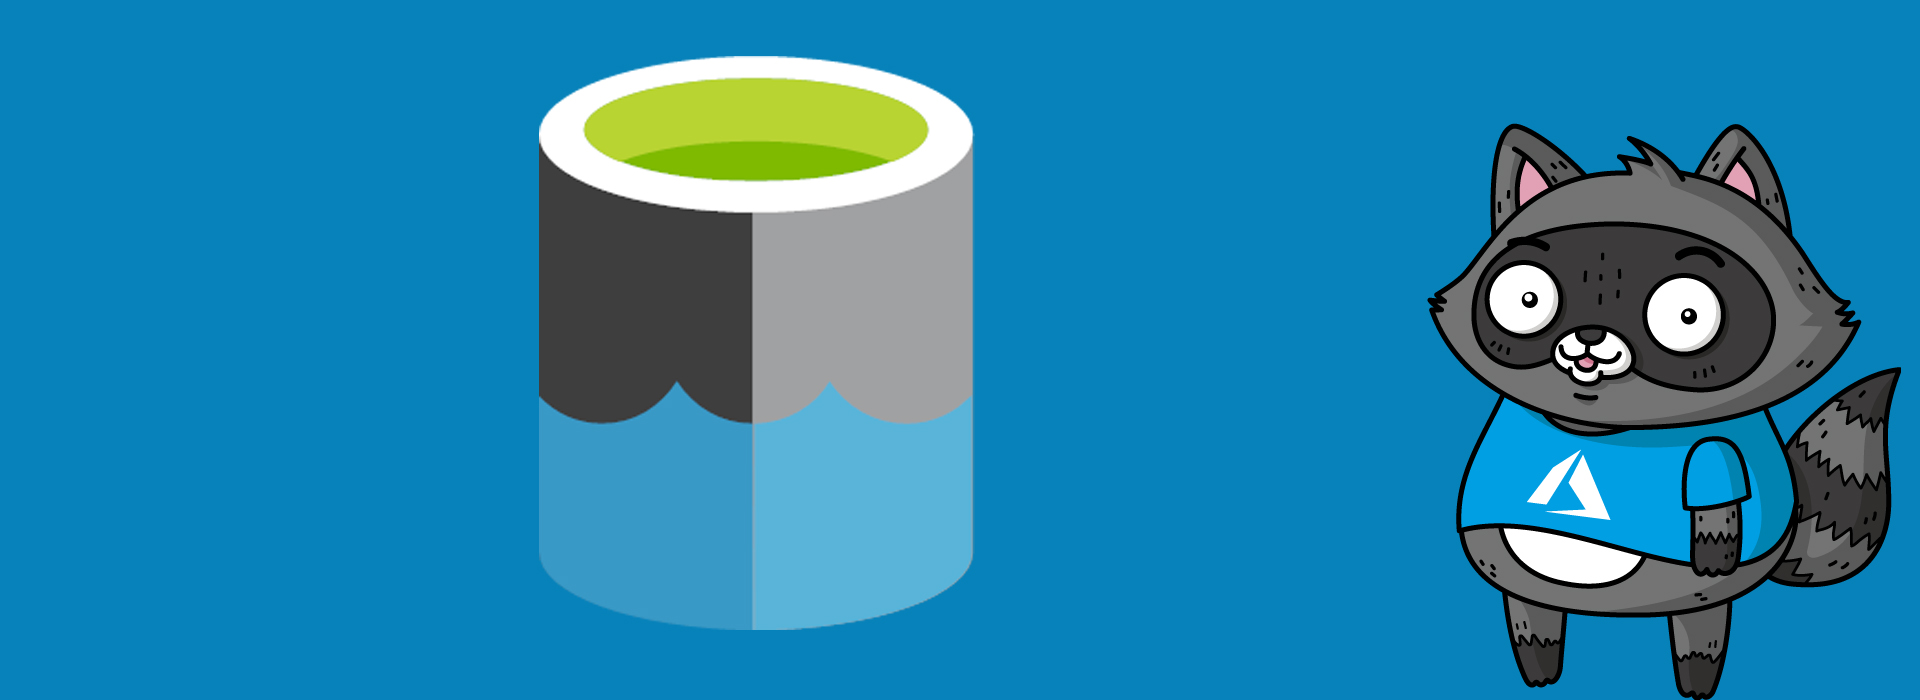 The Azure Data Lake Storage logo on a blue background, next to a picture of Bit the Raccoon.